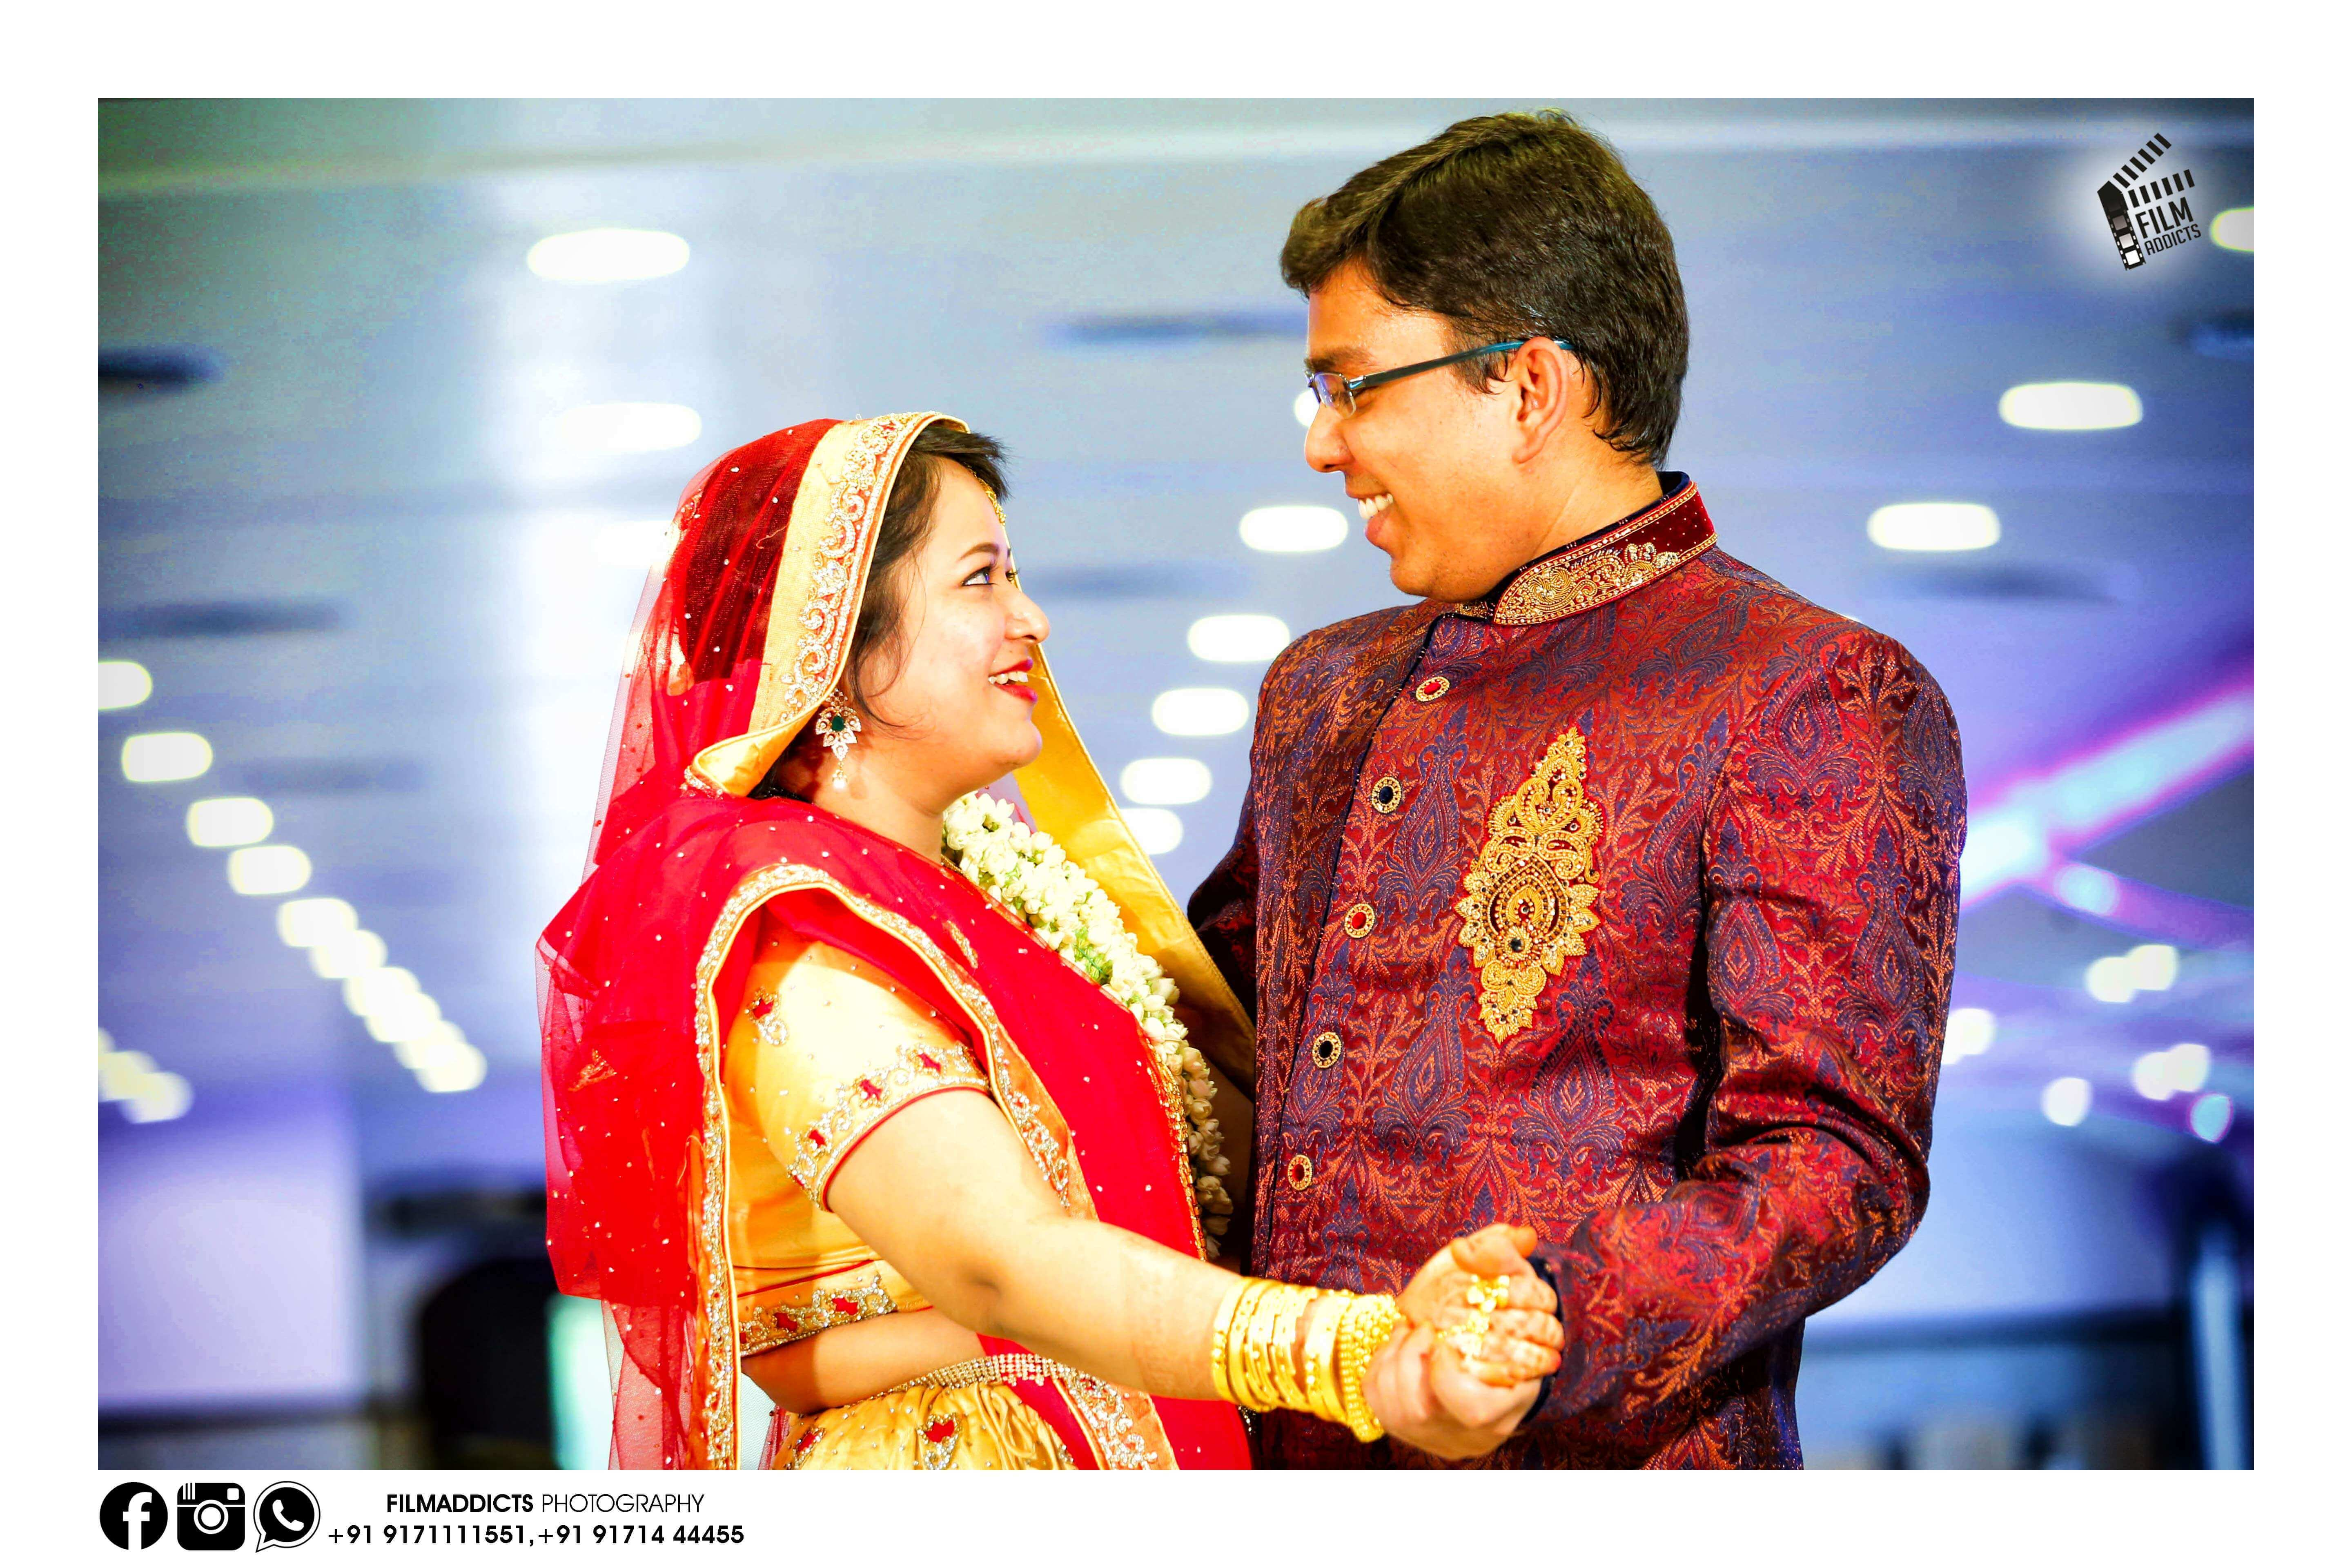 Muslim wedding Photographers in Melur - Filmaddicts Photography